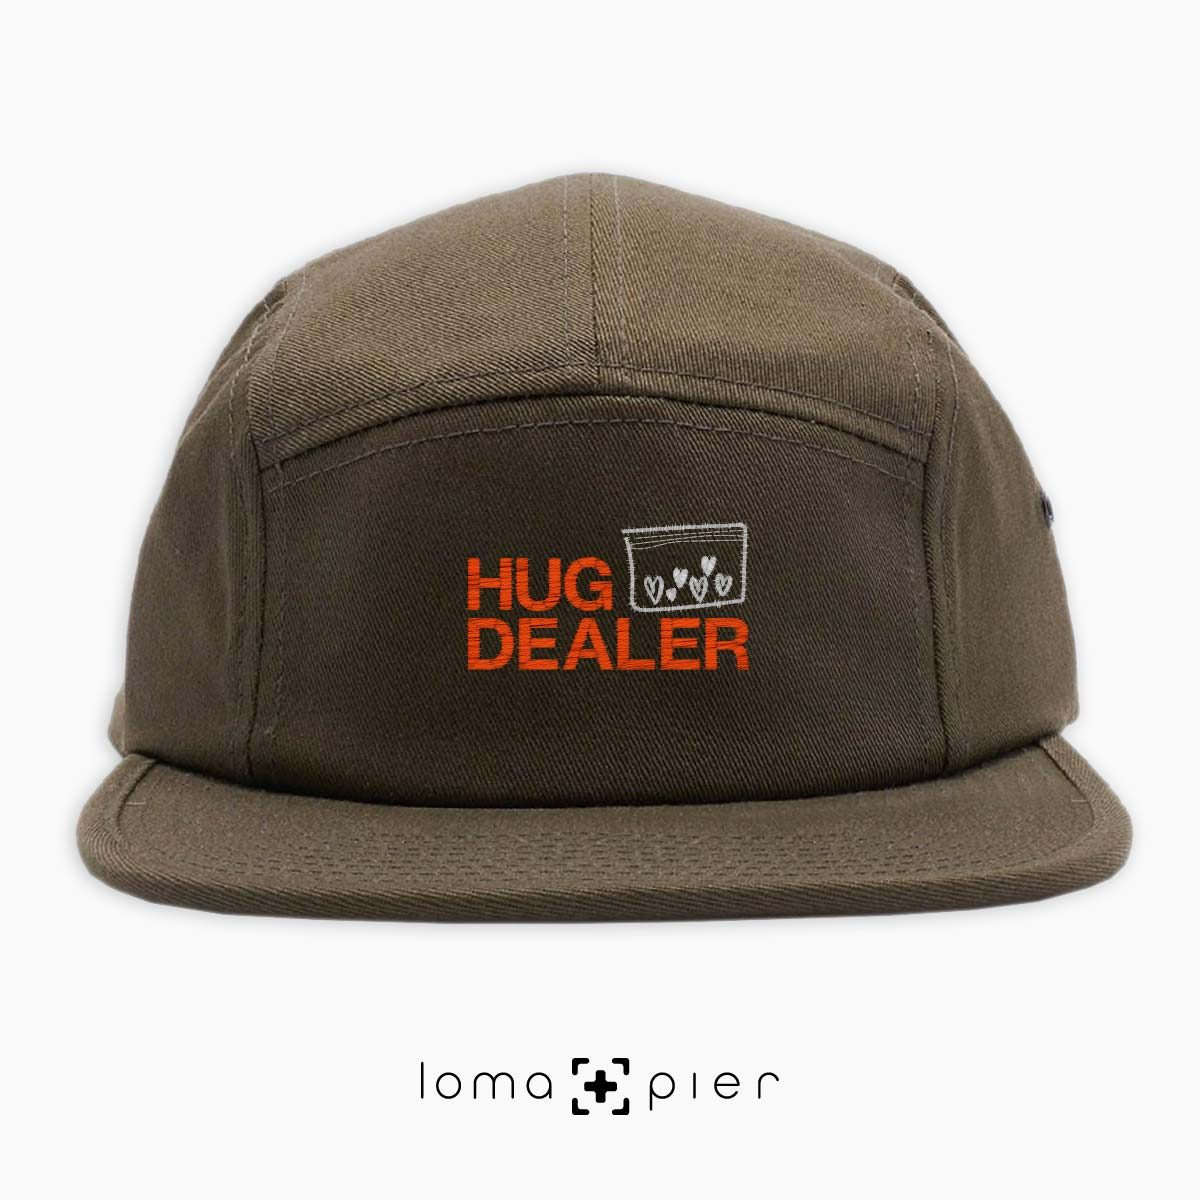 HUG DEALER icon embroidered on an olive green cotton 5-panel hat with multicolor thread by loma+pier hat store